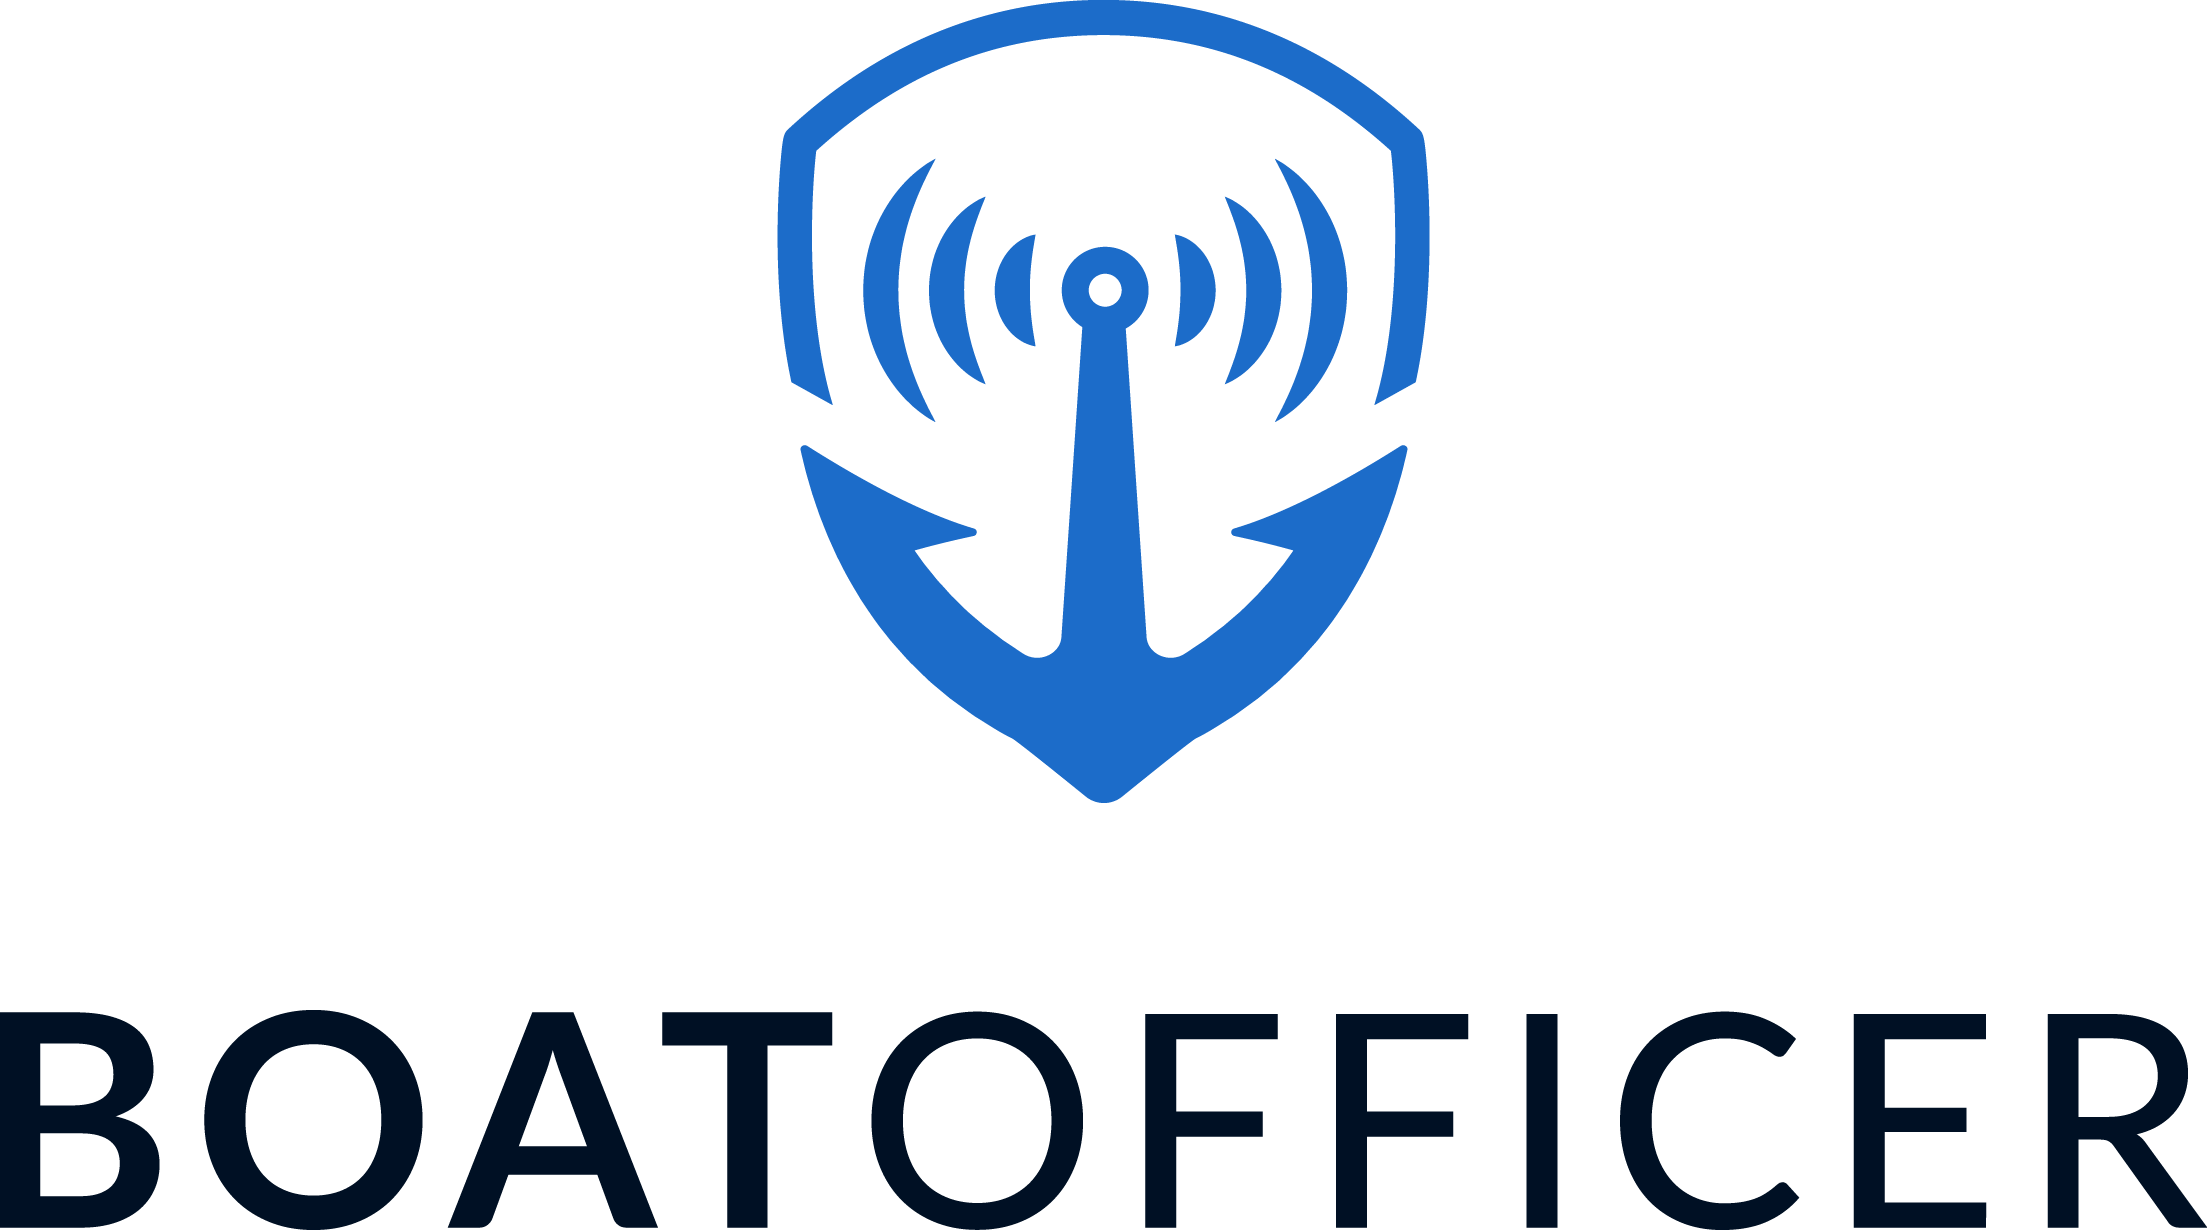 New Logo for an Innovative Product / Mobile Service: BoatOfficer